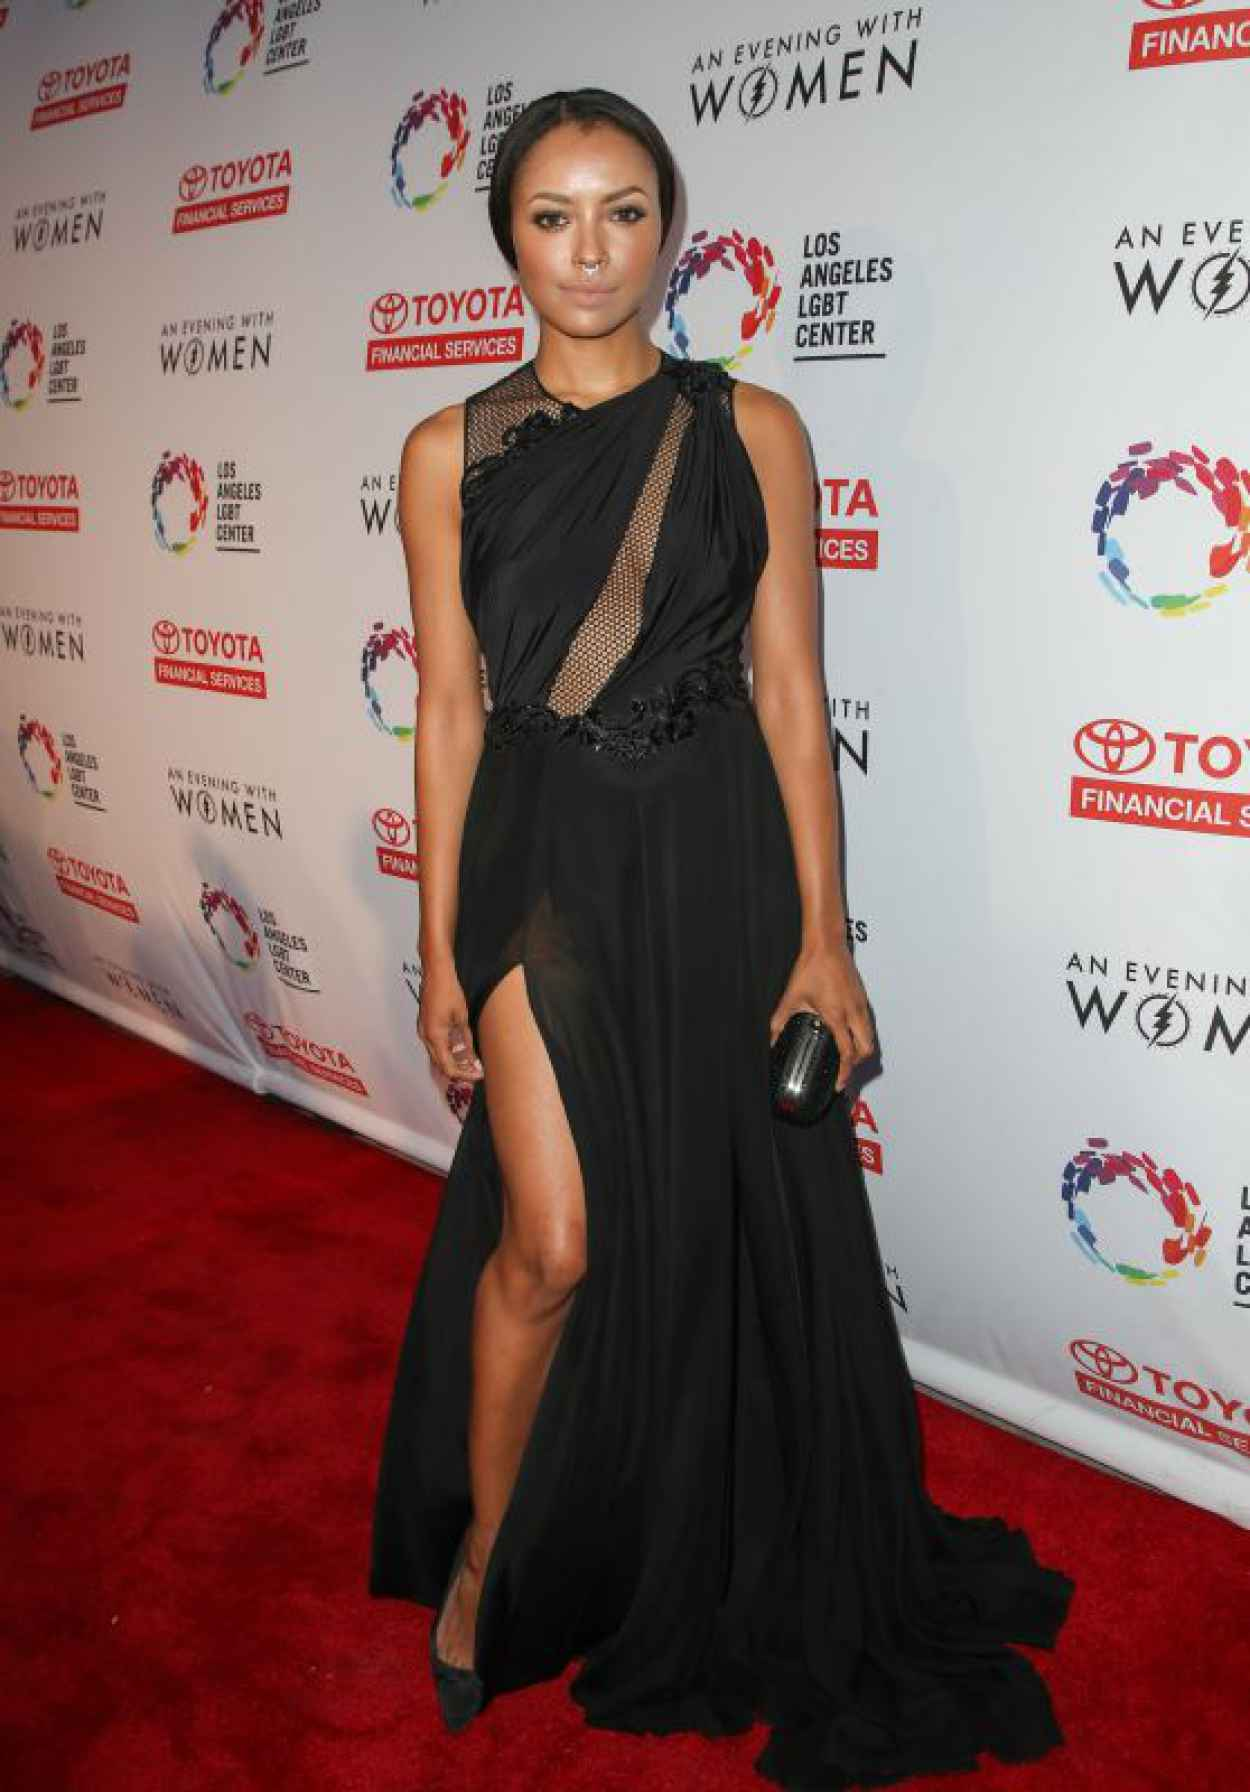 Kat Graham - An Evening With Women Benefiting the Los Angeles LGBT Center, May 2015-1